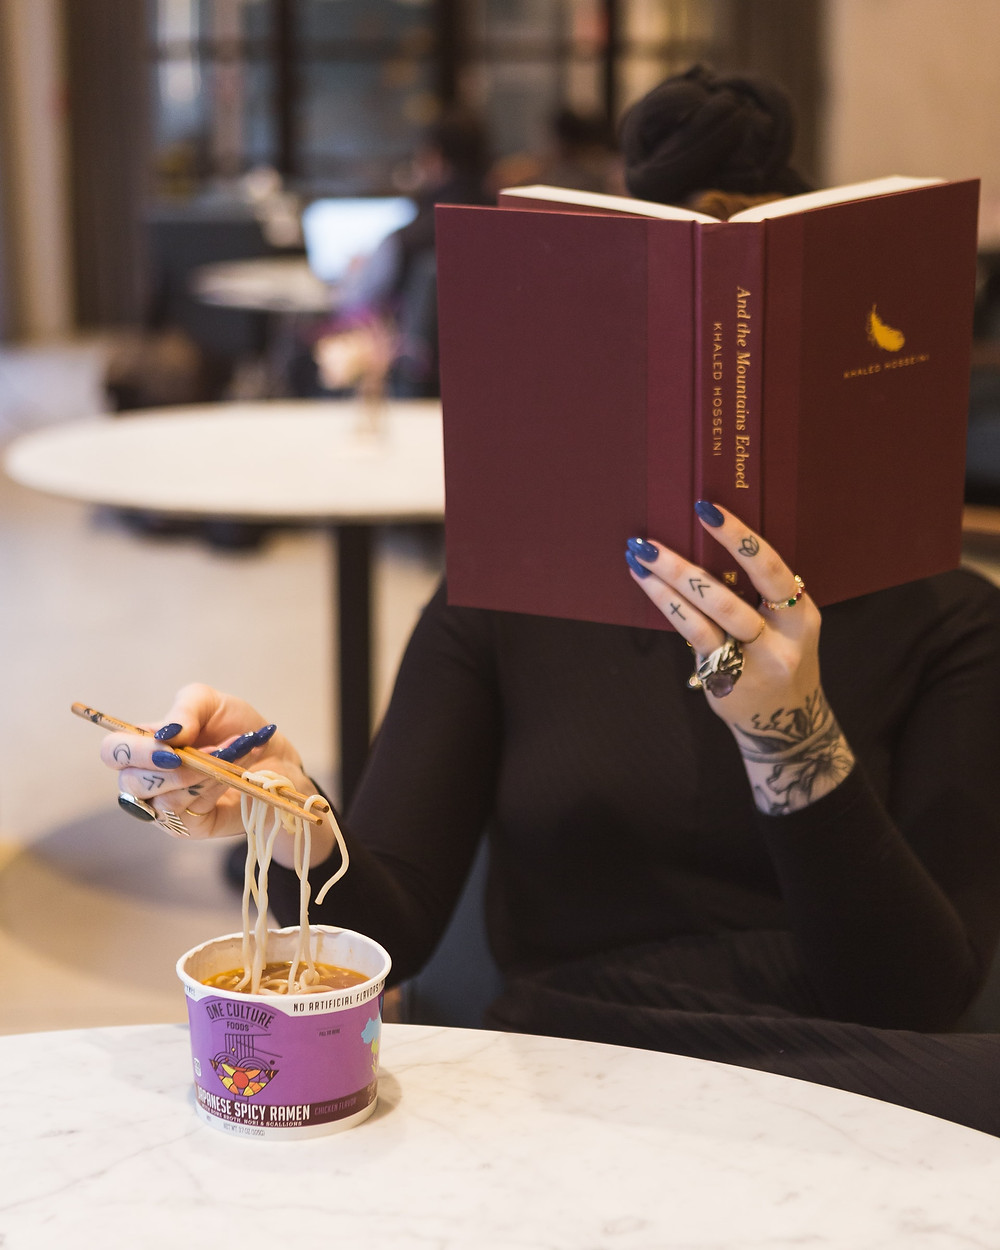 Woman with hand tattoos at table reading while eating sushi (credit: Creative Commons)